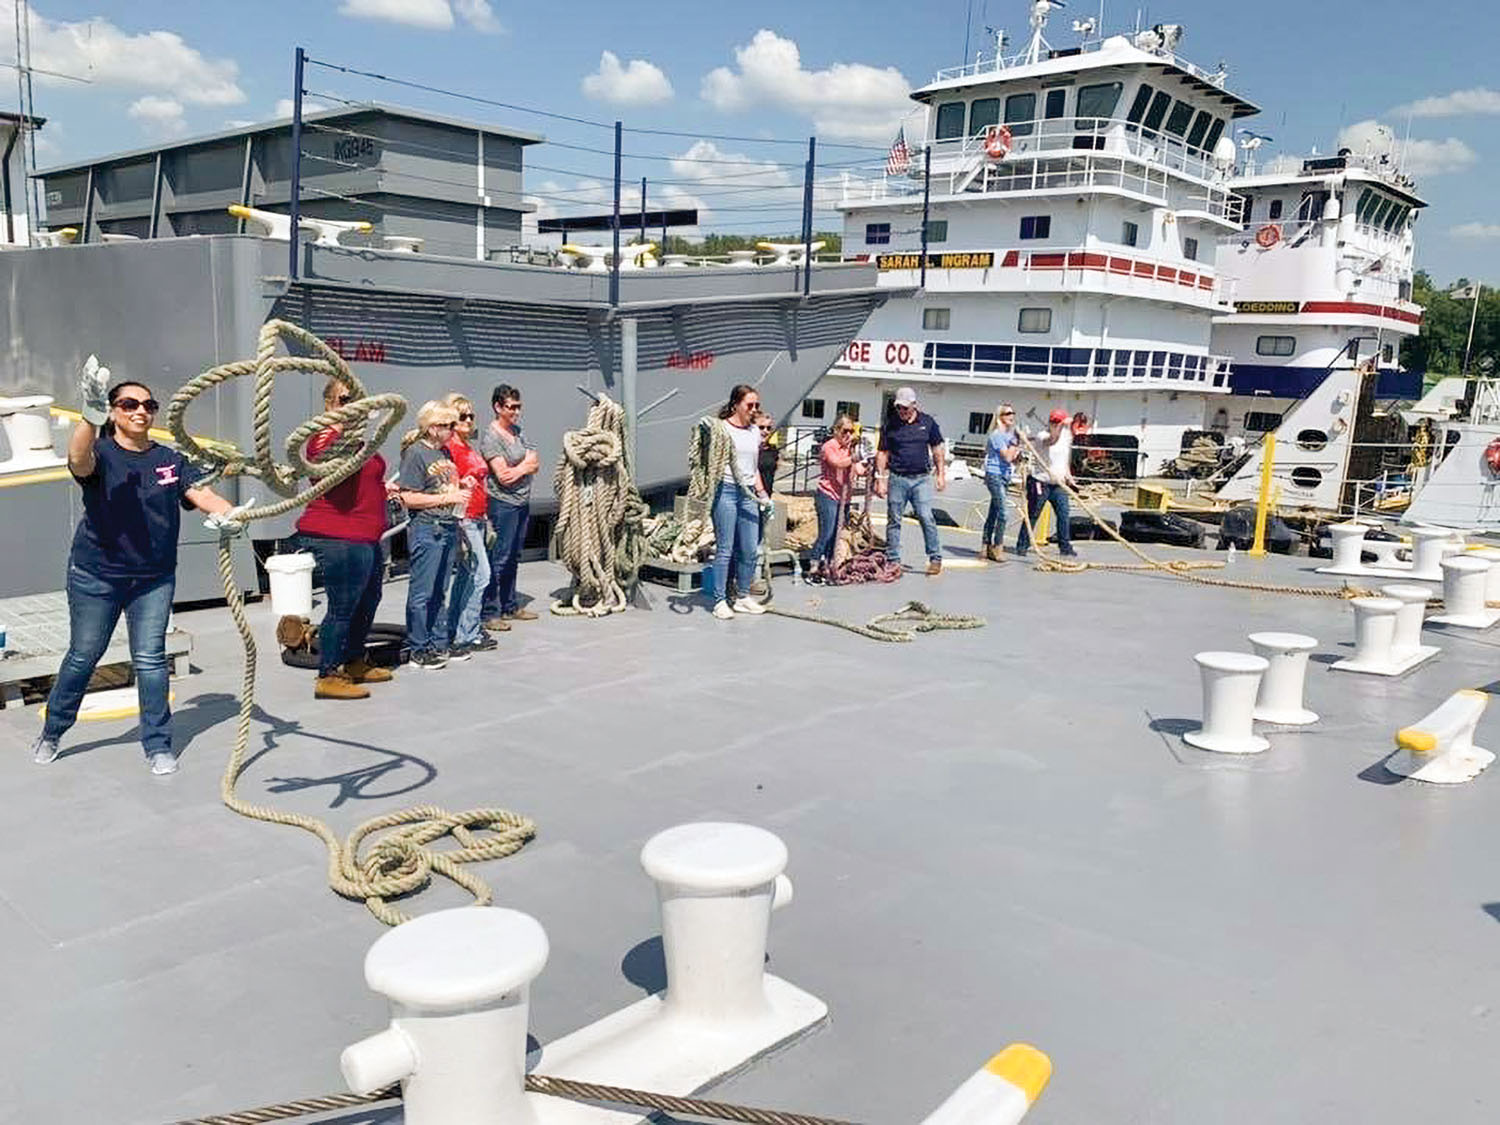 Women from the West Kentucky chapter of Women in Maritime Operations practice throwing line on the Ingram Barge Company training pad as part of one of the chapter's educational events. (photo courtesy of West Kentucky chapter of Women in Maritime Operations)